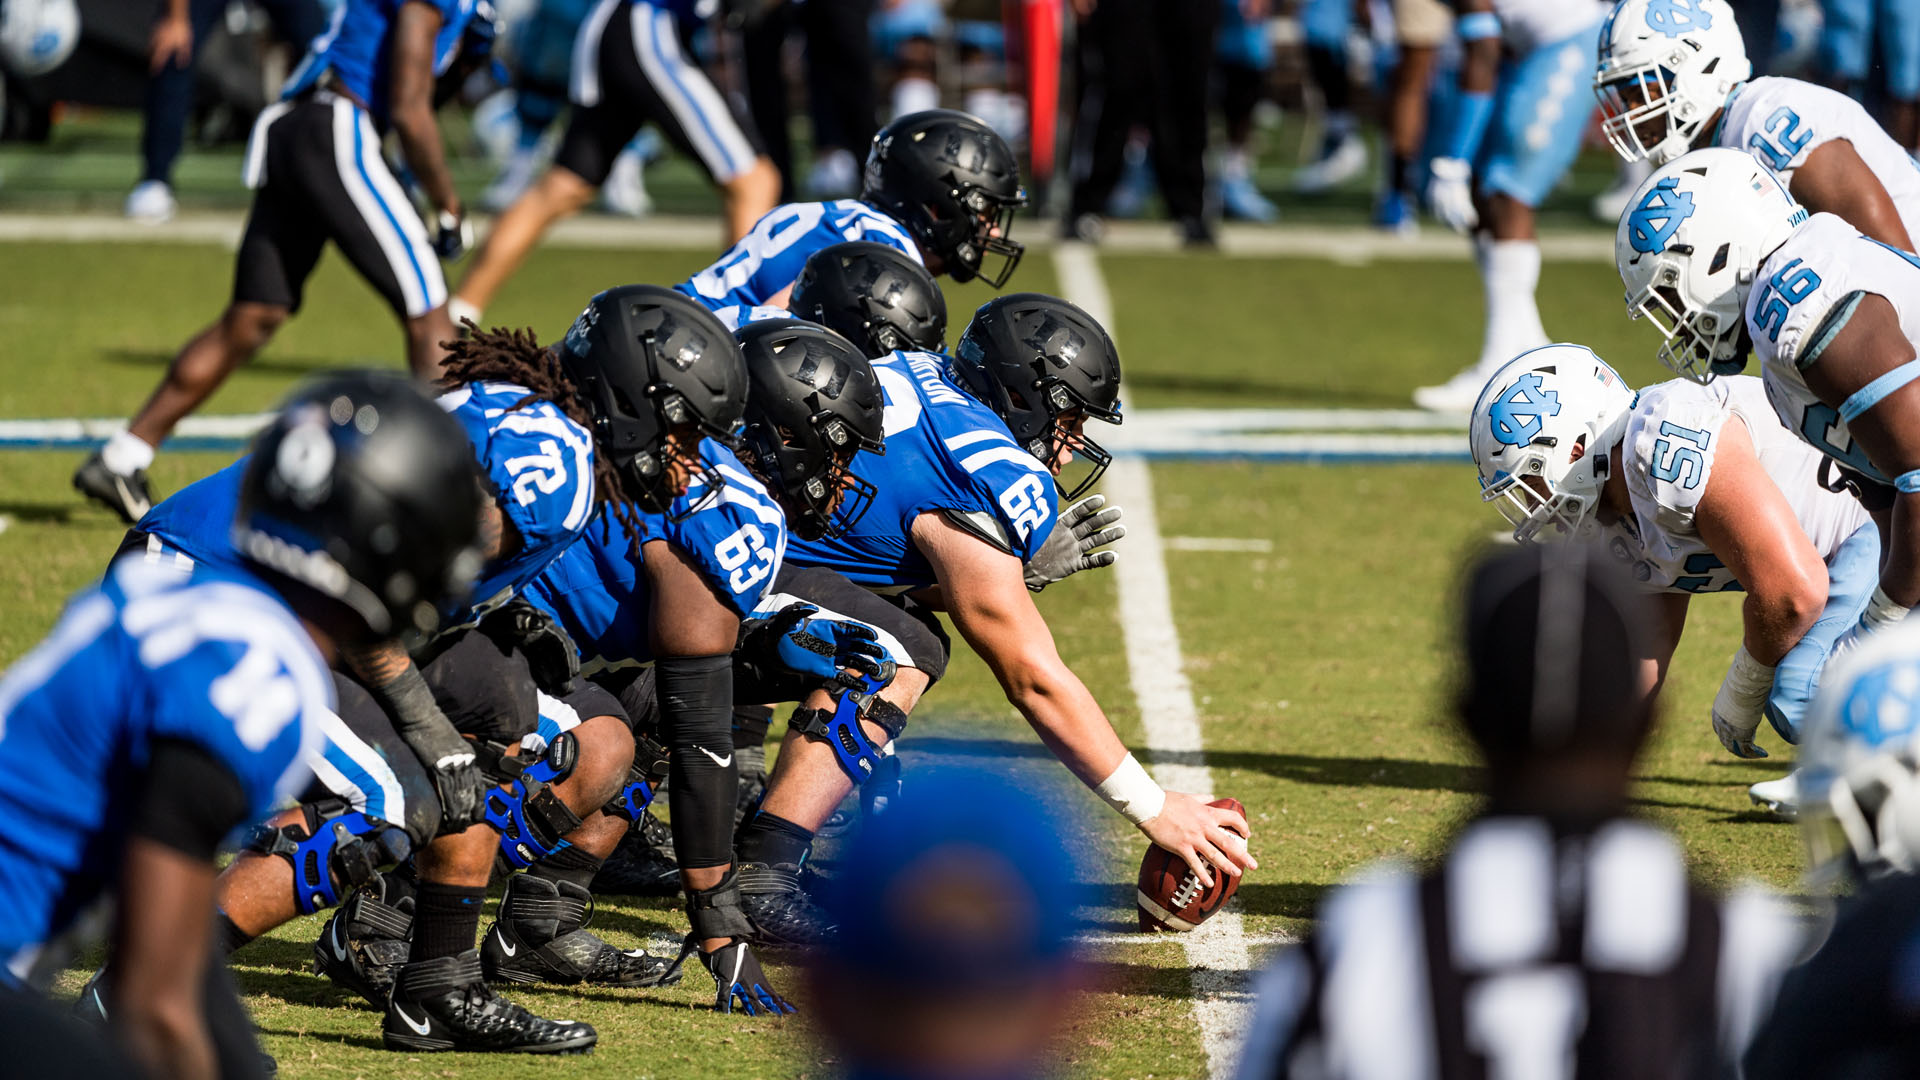 The offensive line gets ready to block prior to a snap against North Carolina